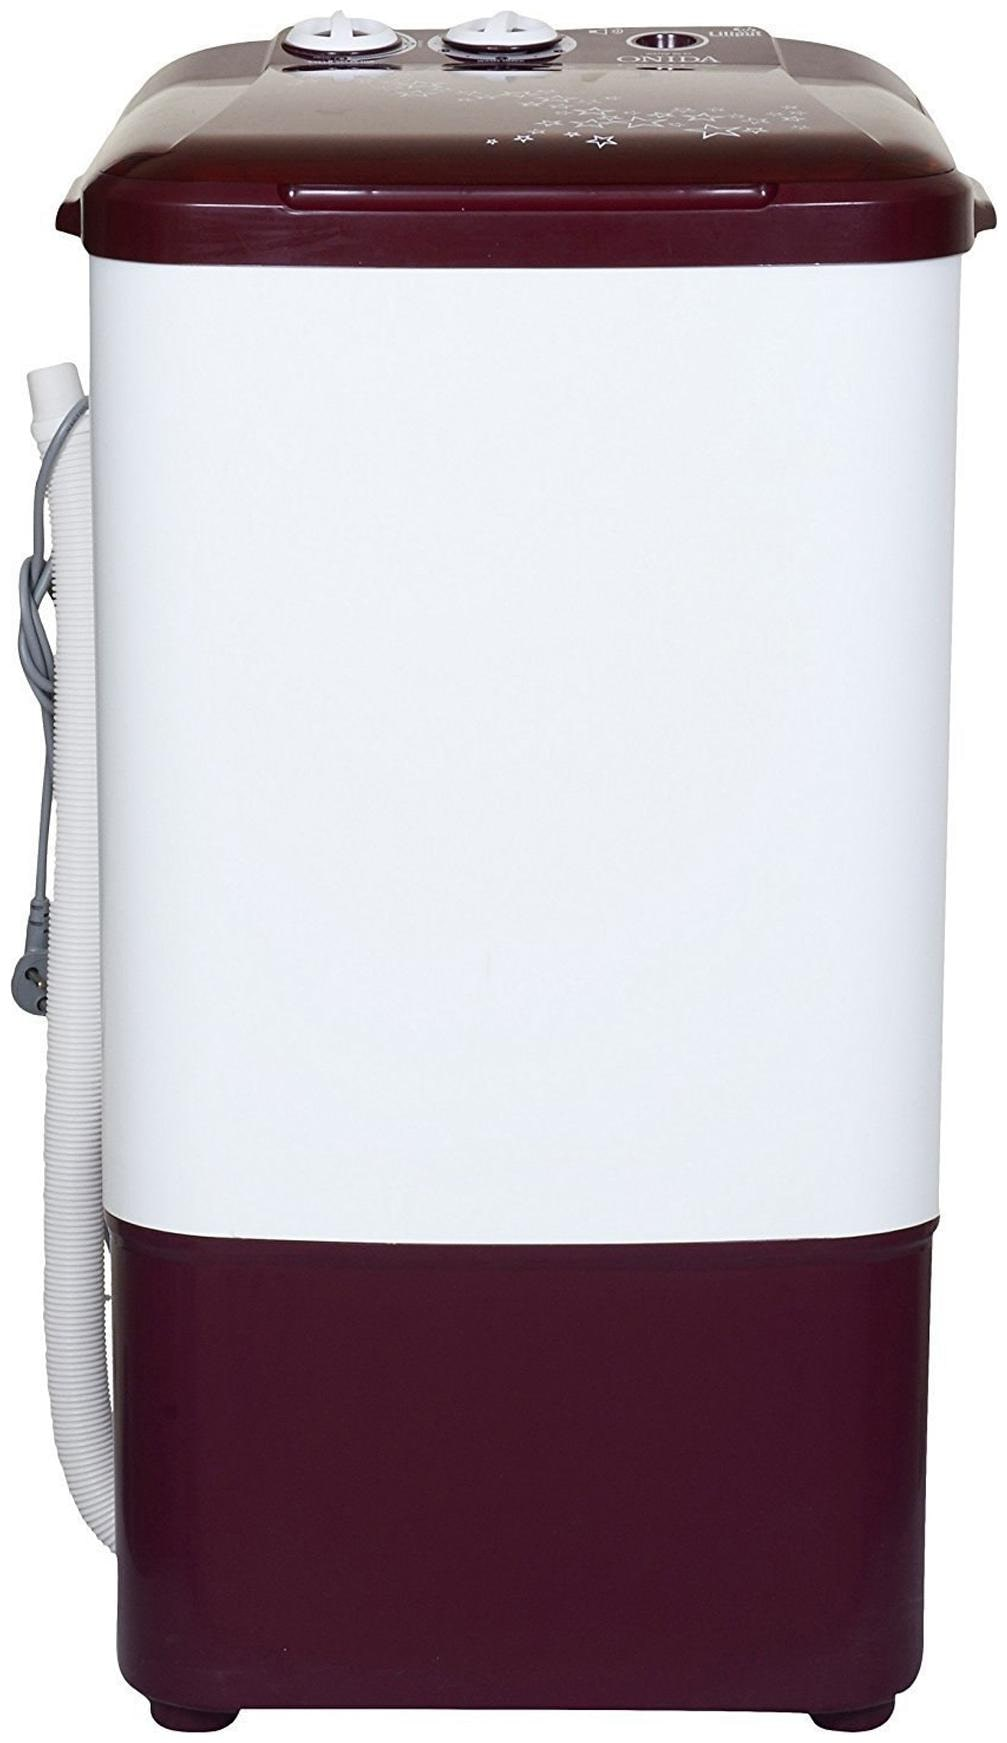 Onida 6.2 kg Semi Automatic Top Load Washer Only Washing Machine (WS65WLPT1, Lava Red)